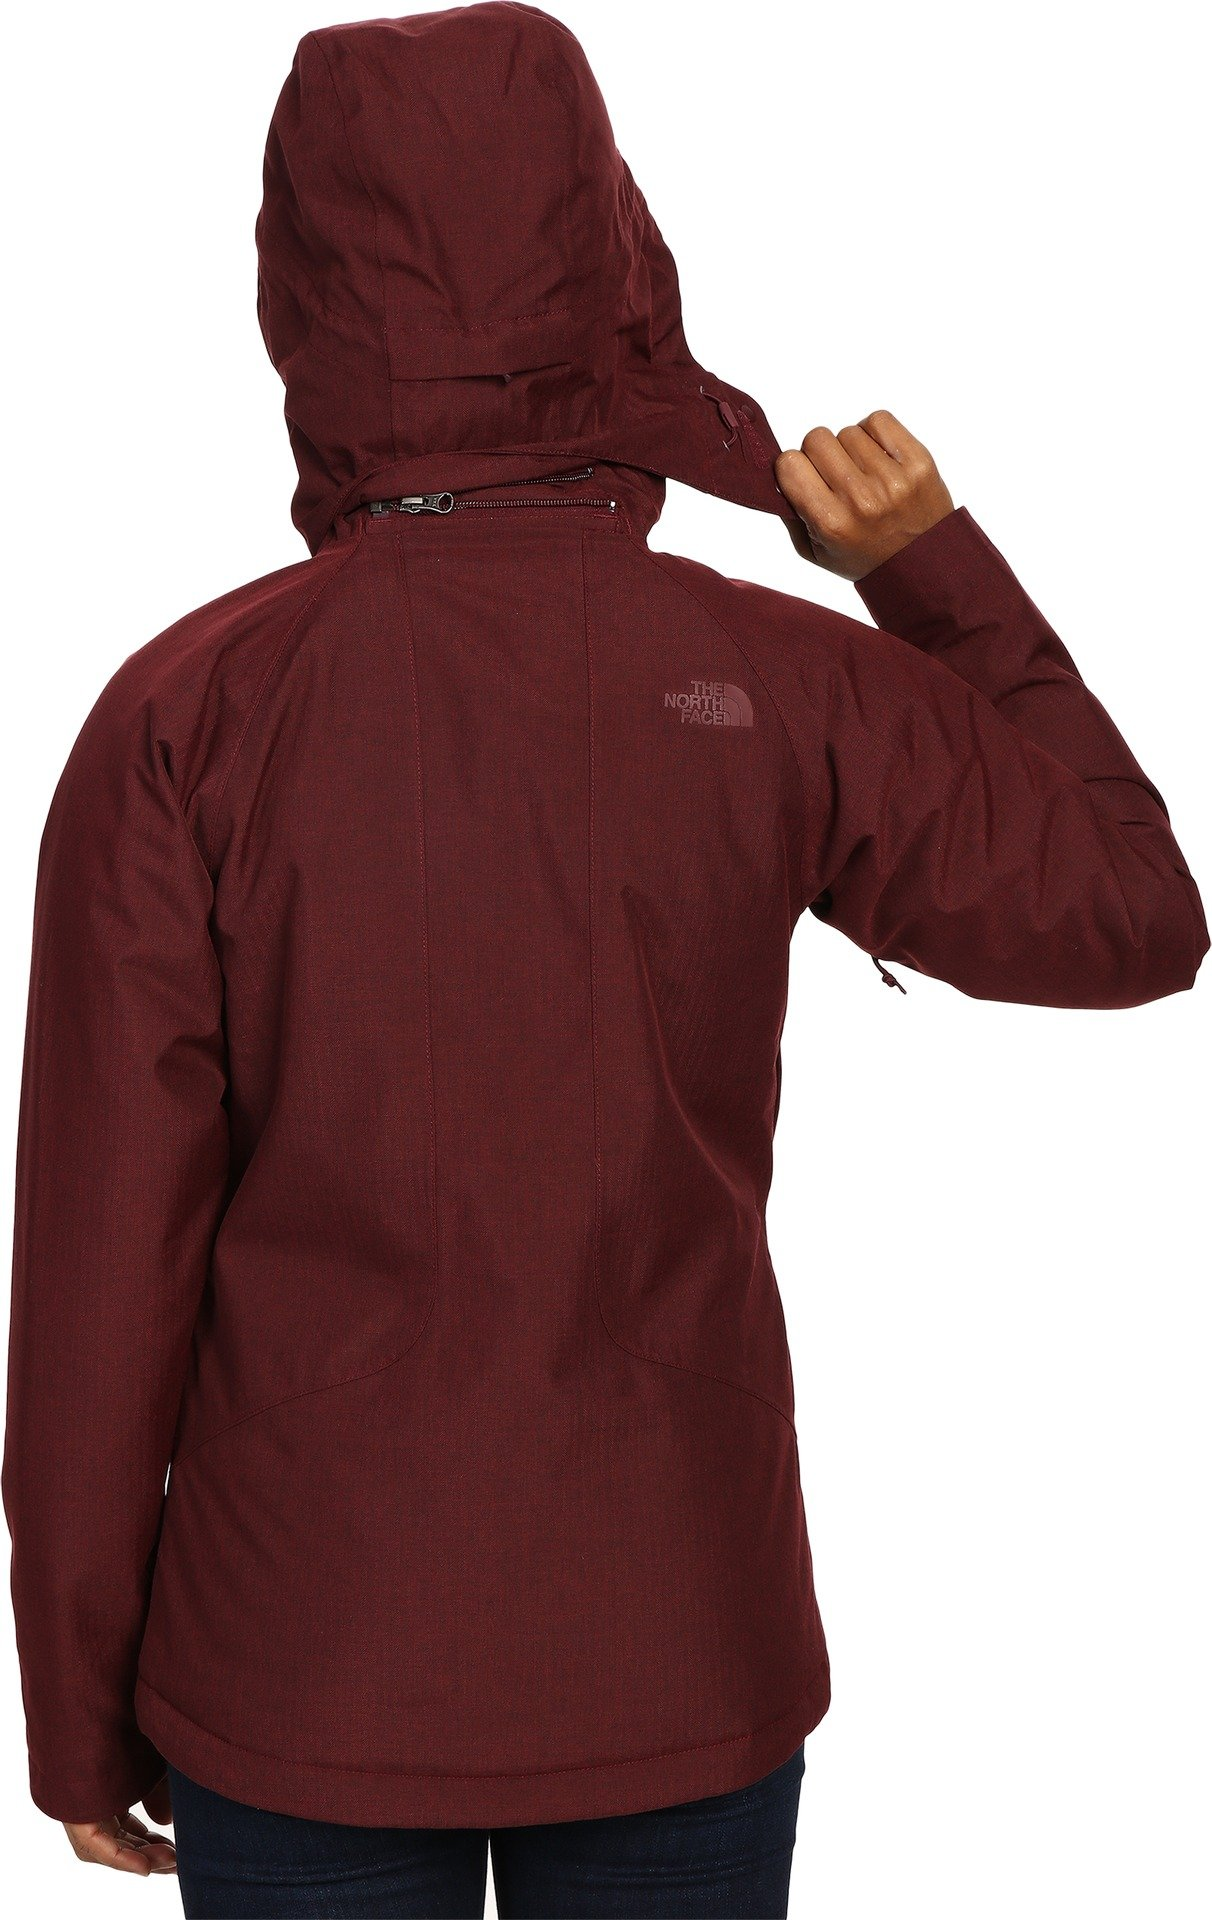 The North Face Women's Inlux Insulated Jacket Deep Garnet Red Heather (Prior Season) X-Small by The North Face (Image #3)